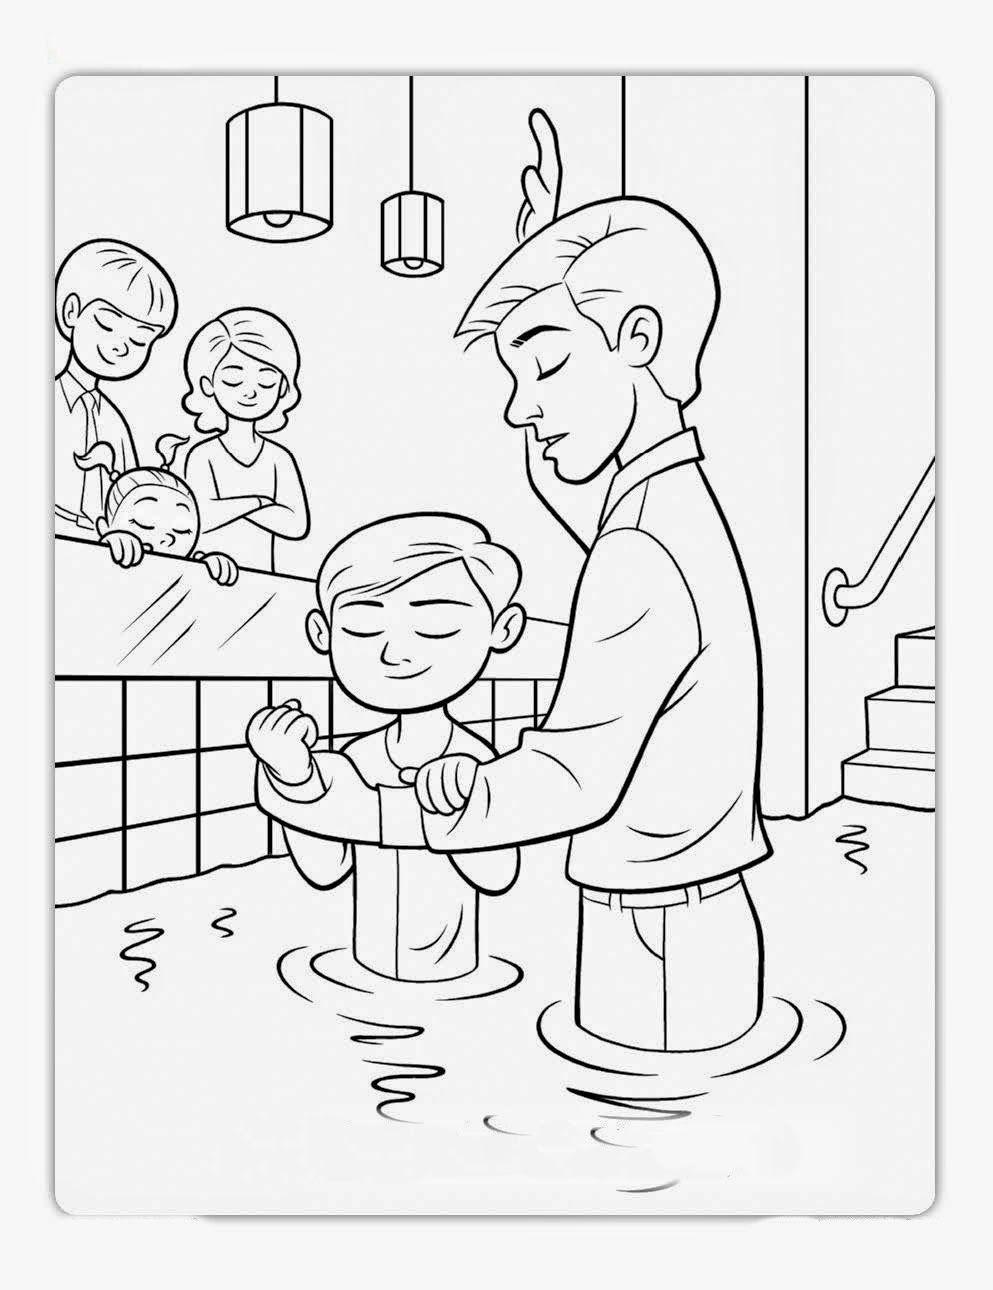 Pin by Tam On Primary Printable Of Coloring Pages Thanksgiving Turkey Baptism Page Contemporary Style Download